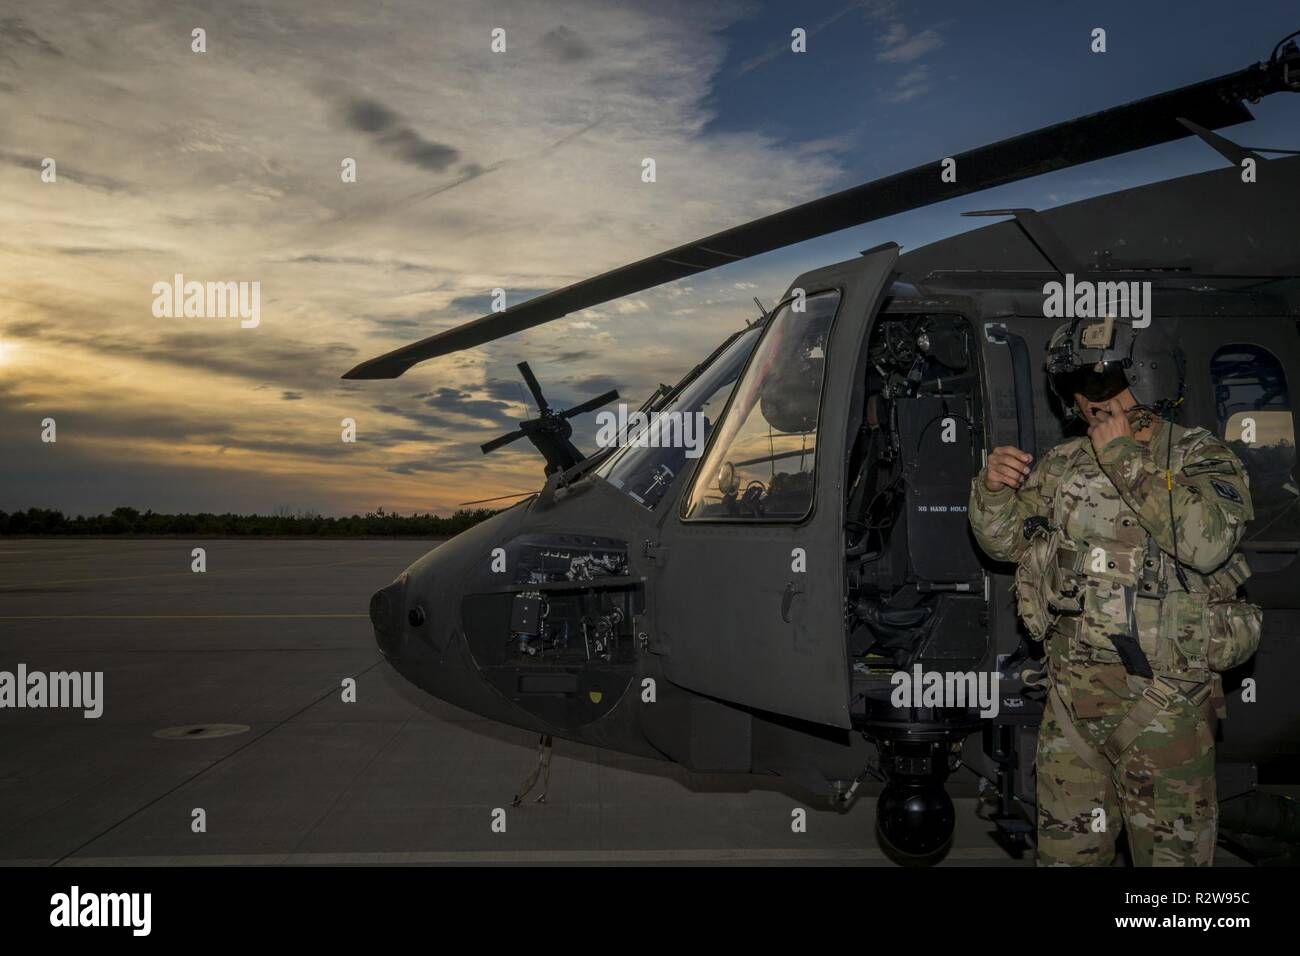 4263ee1057 Us Army Helicopter Pilot Training Stock Photos   Us Army Helicopter ...